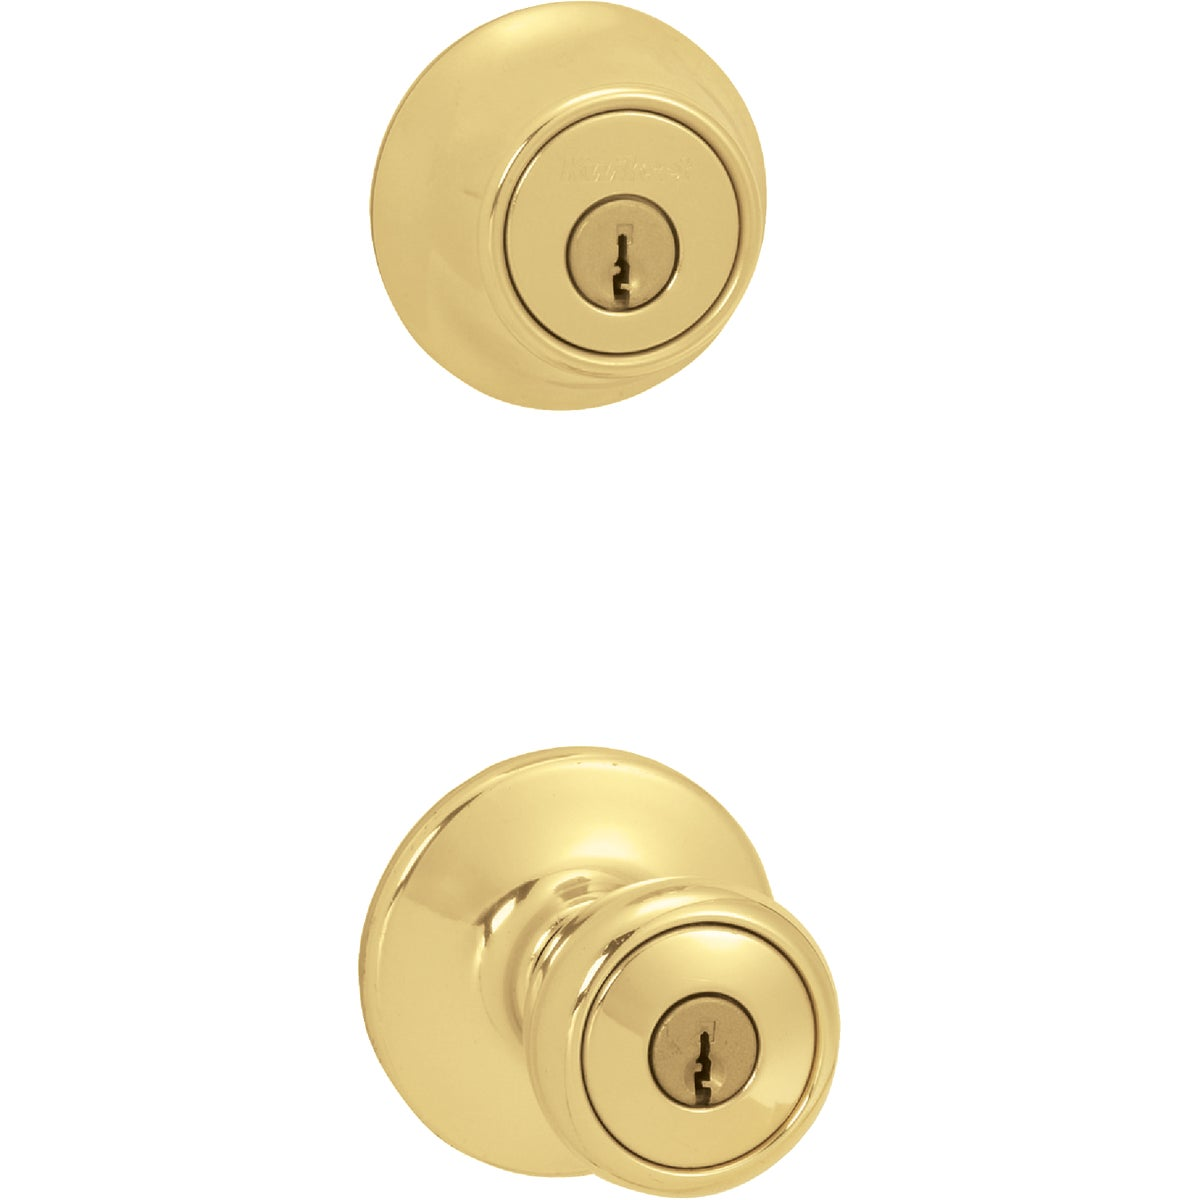 PB CP TYLO ENTRY COMBO - 690T 3 CP CODE K6 by Kwikset